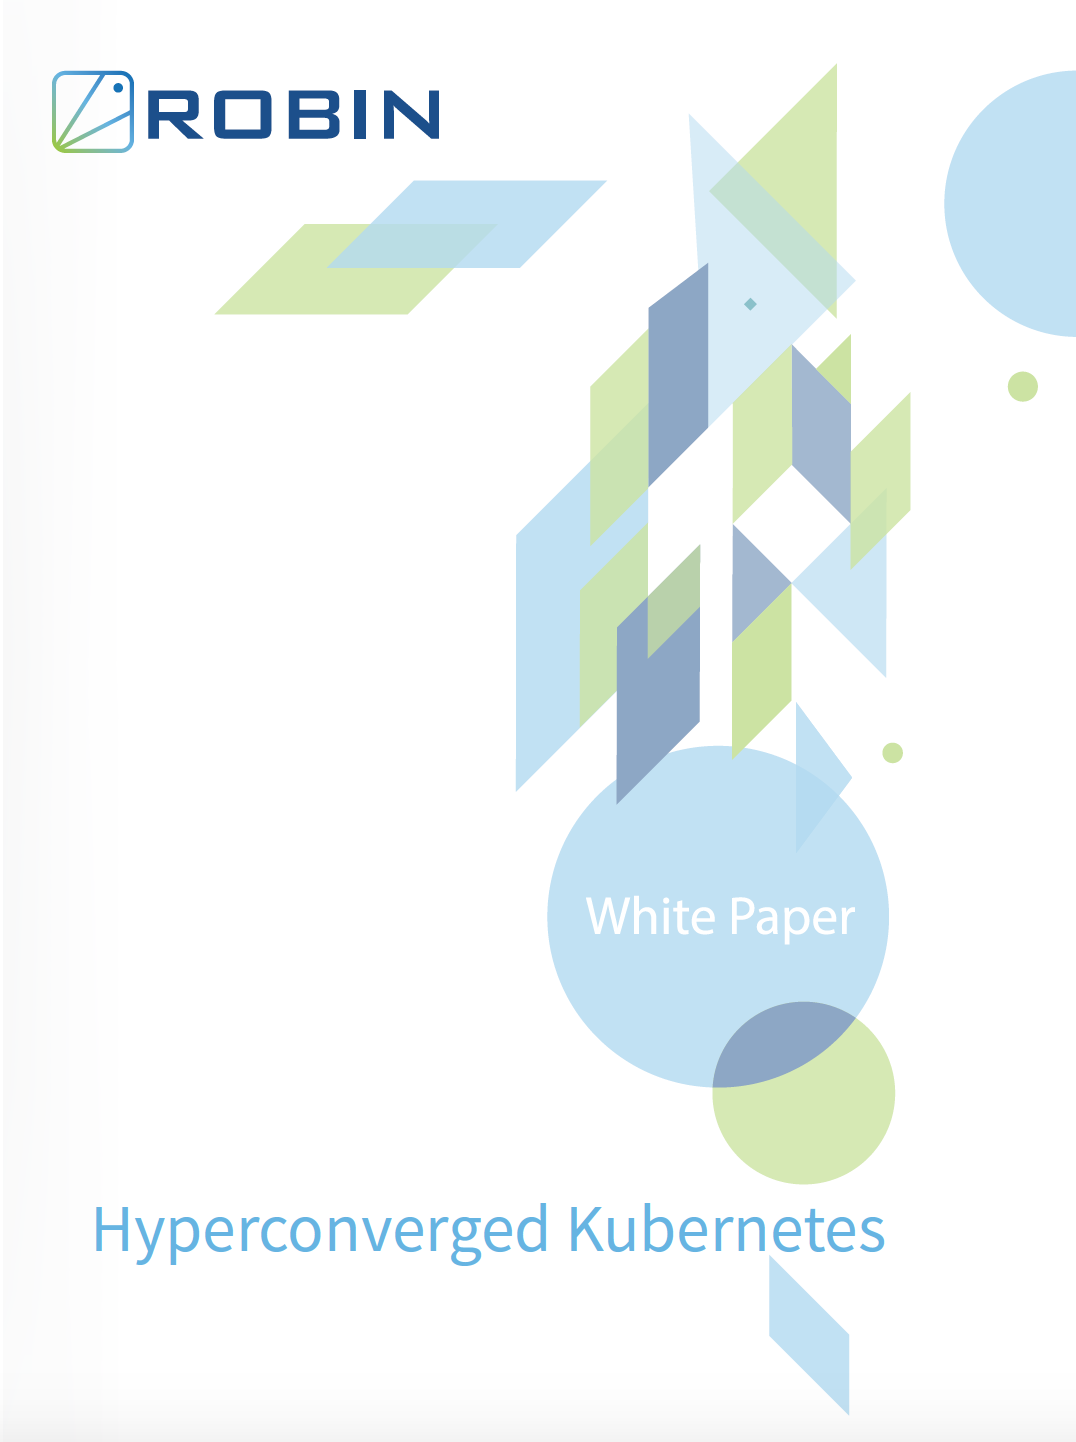 hyperconverged-kubernetes-white-paper-landing-page-graphic